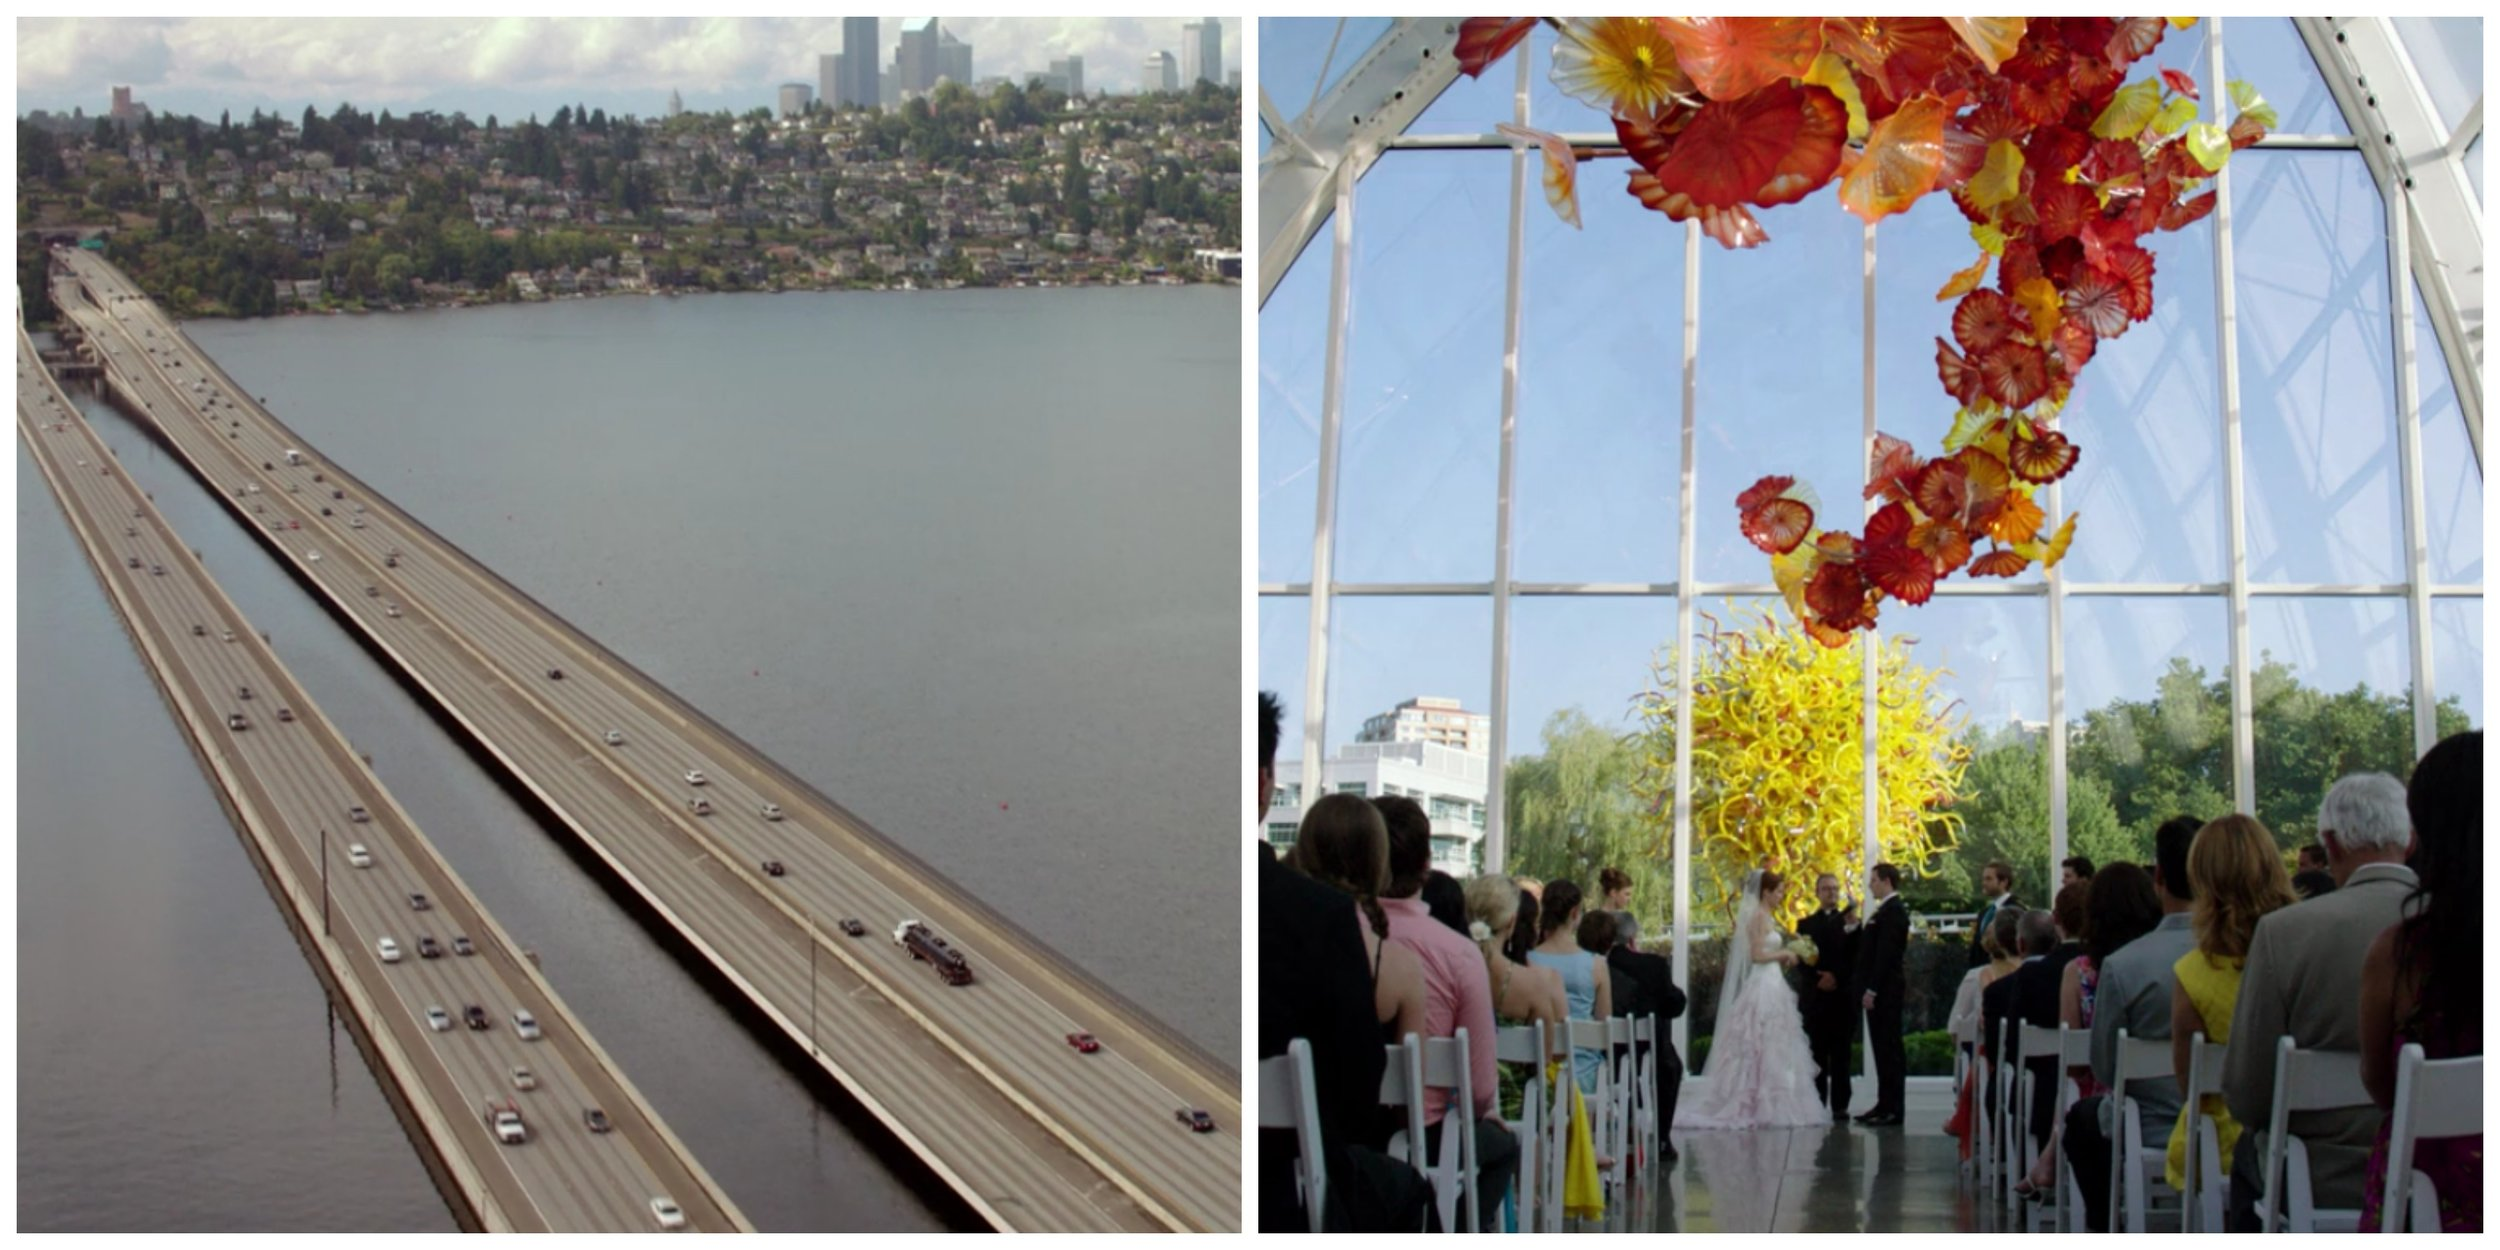 Left: I-90 Bridge, Right: Chihuly Garden and Glass